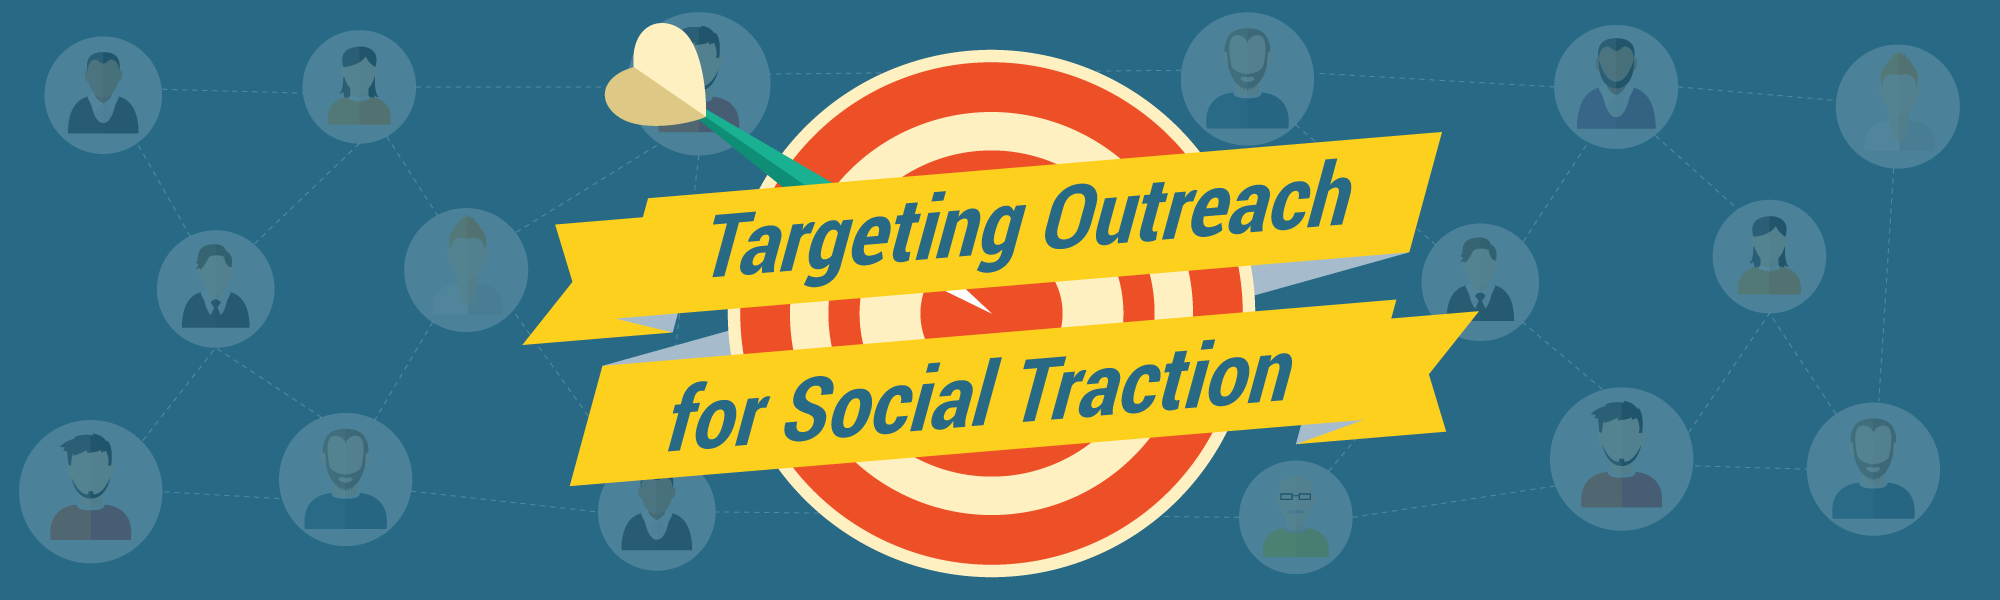 Targeting Outreach for Social Traction Infographics